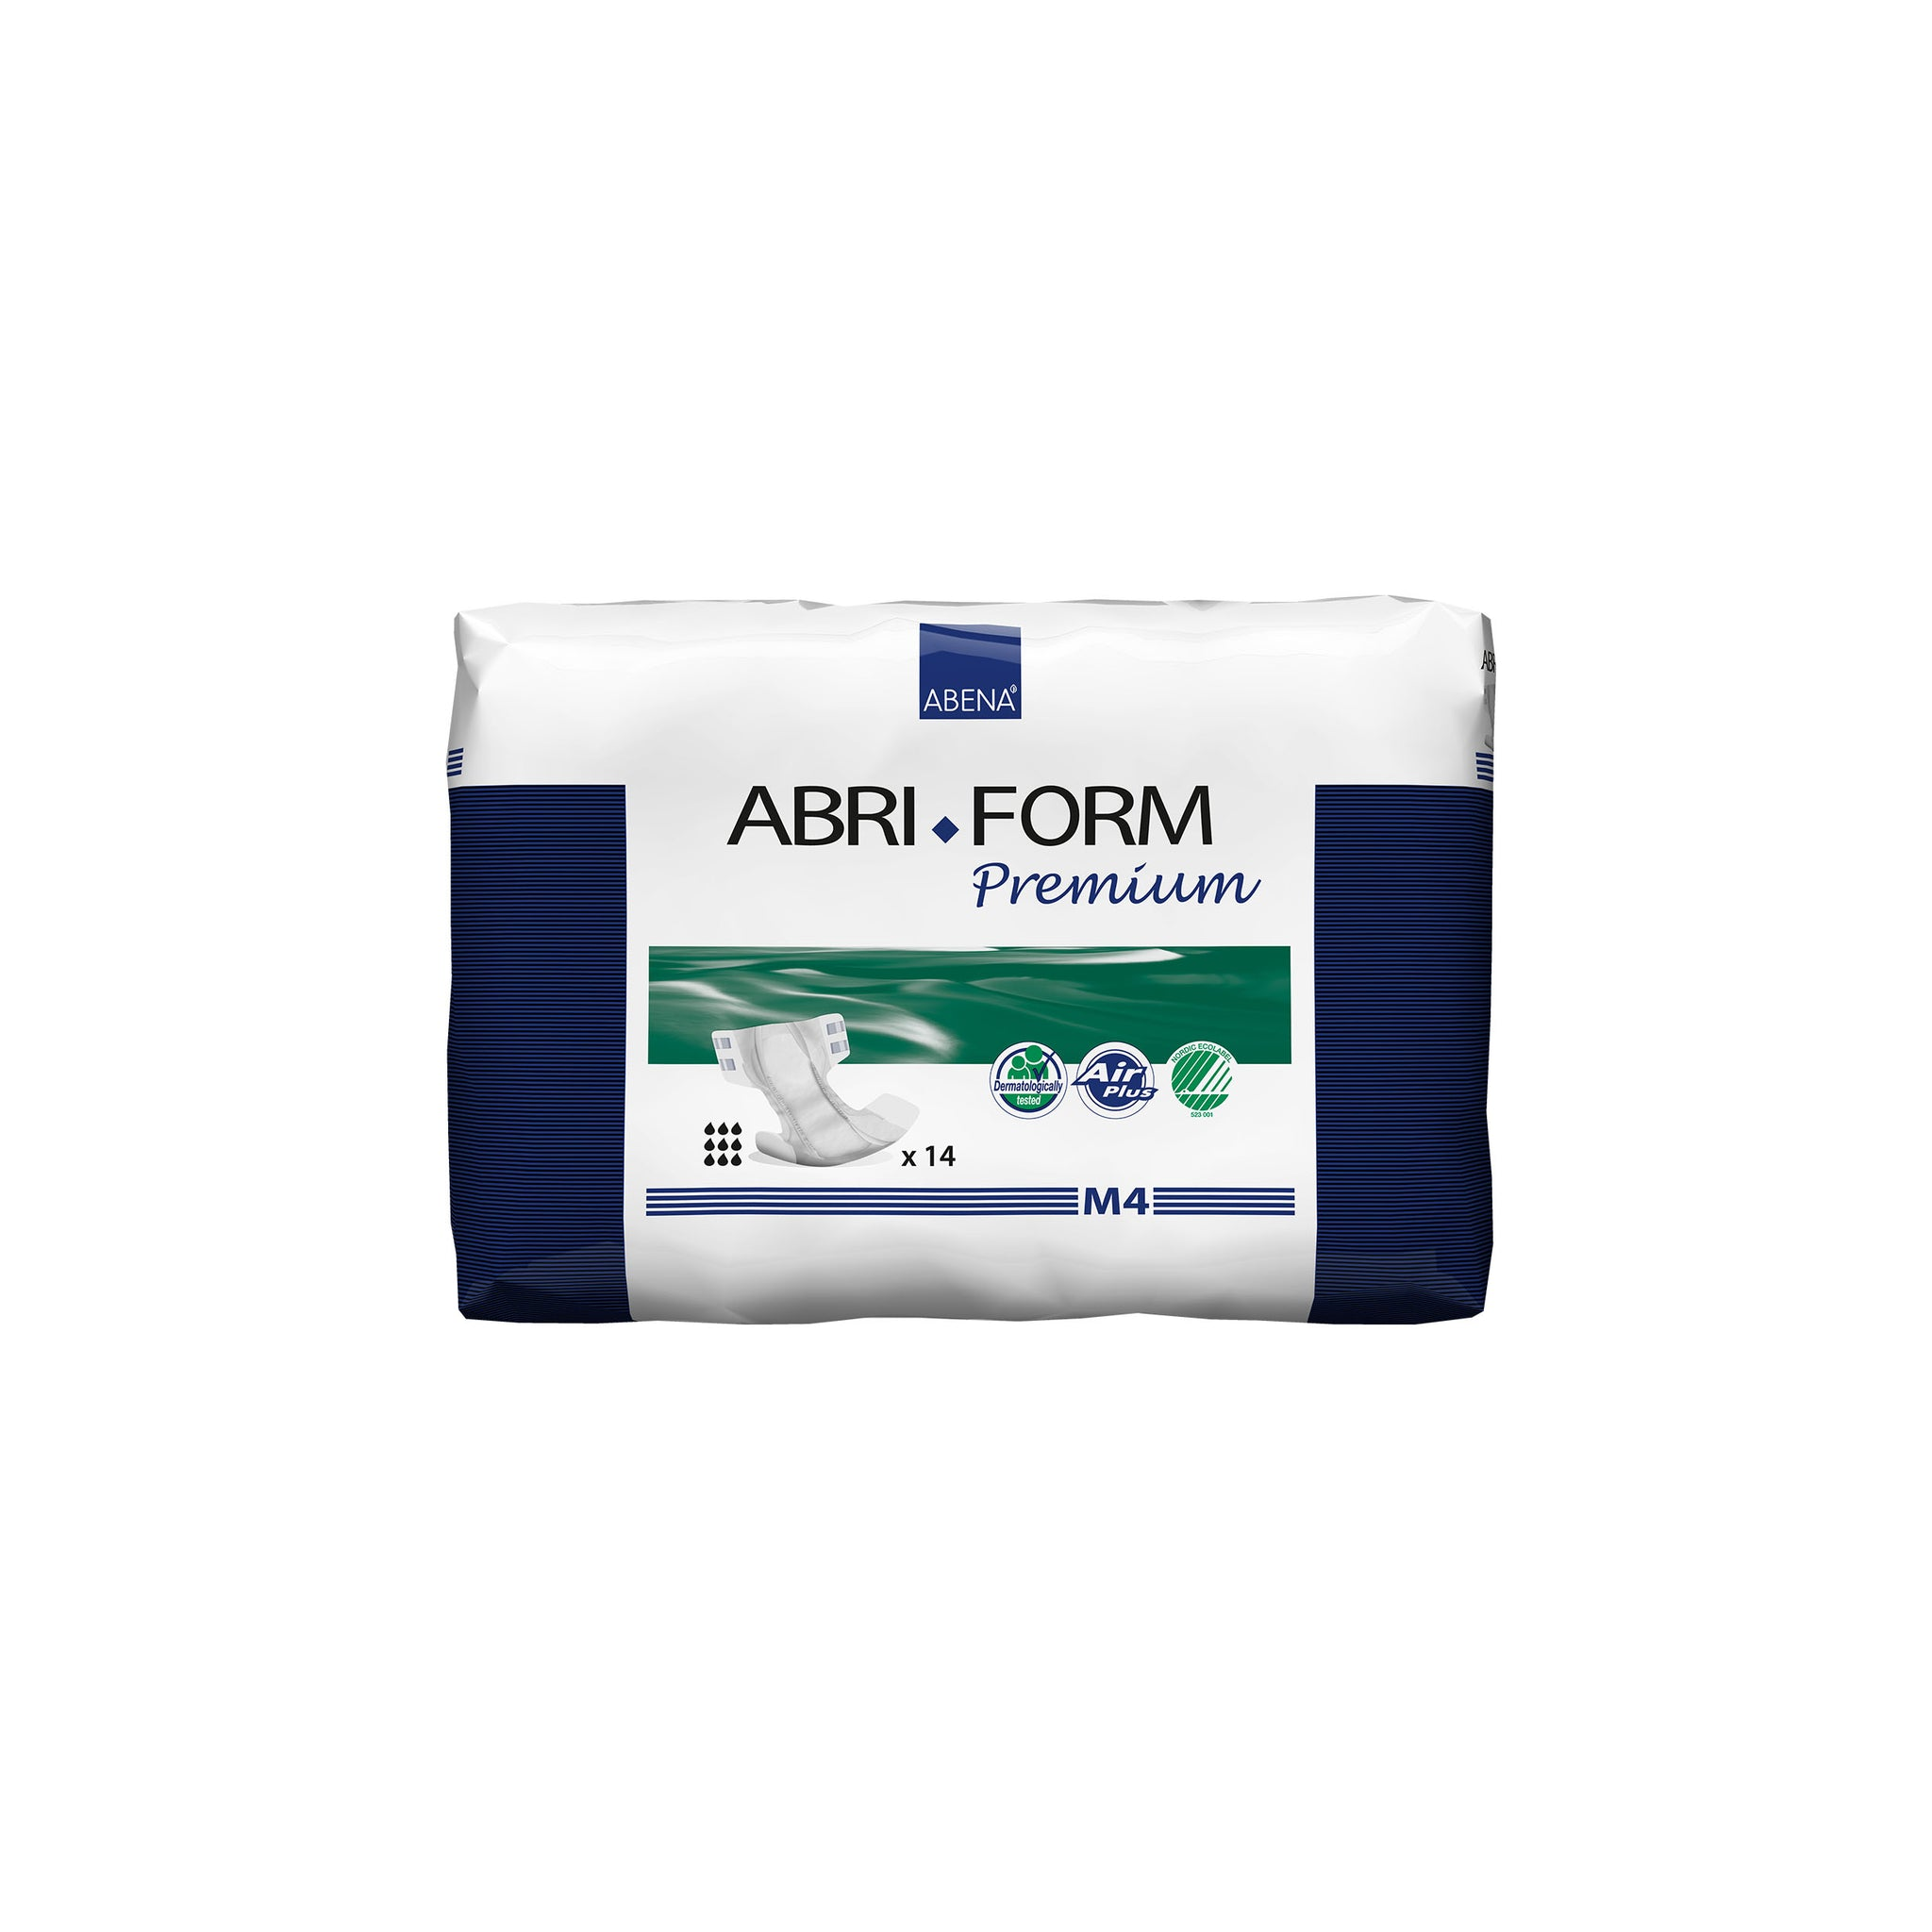 Abena Abri-Form PREMIUM Adult Briefs